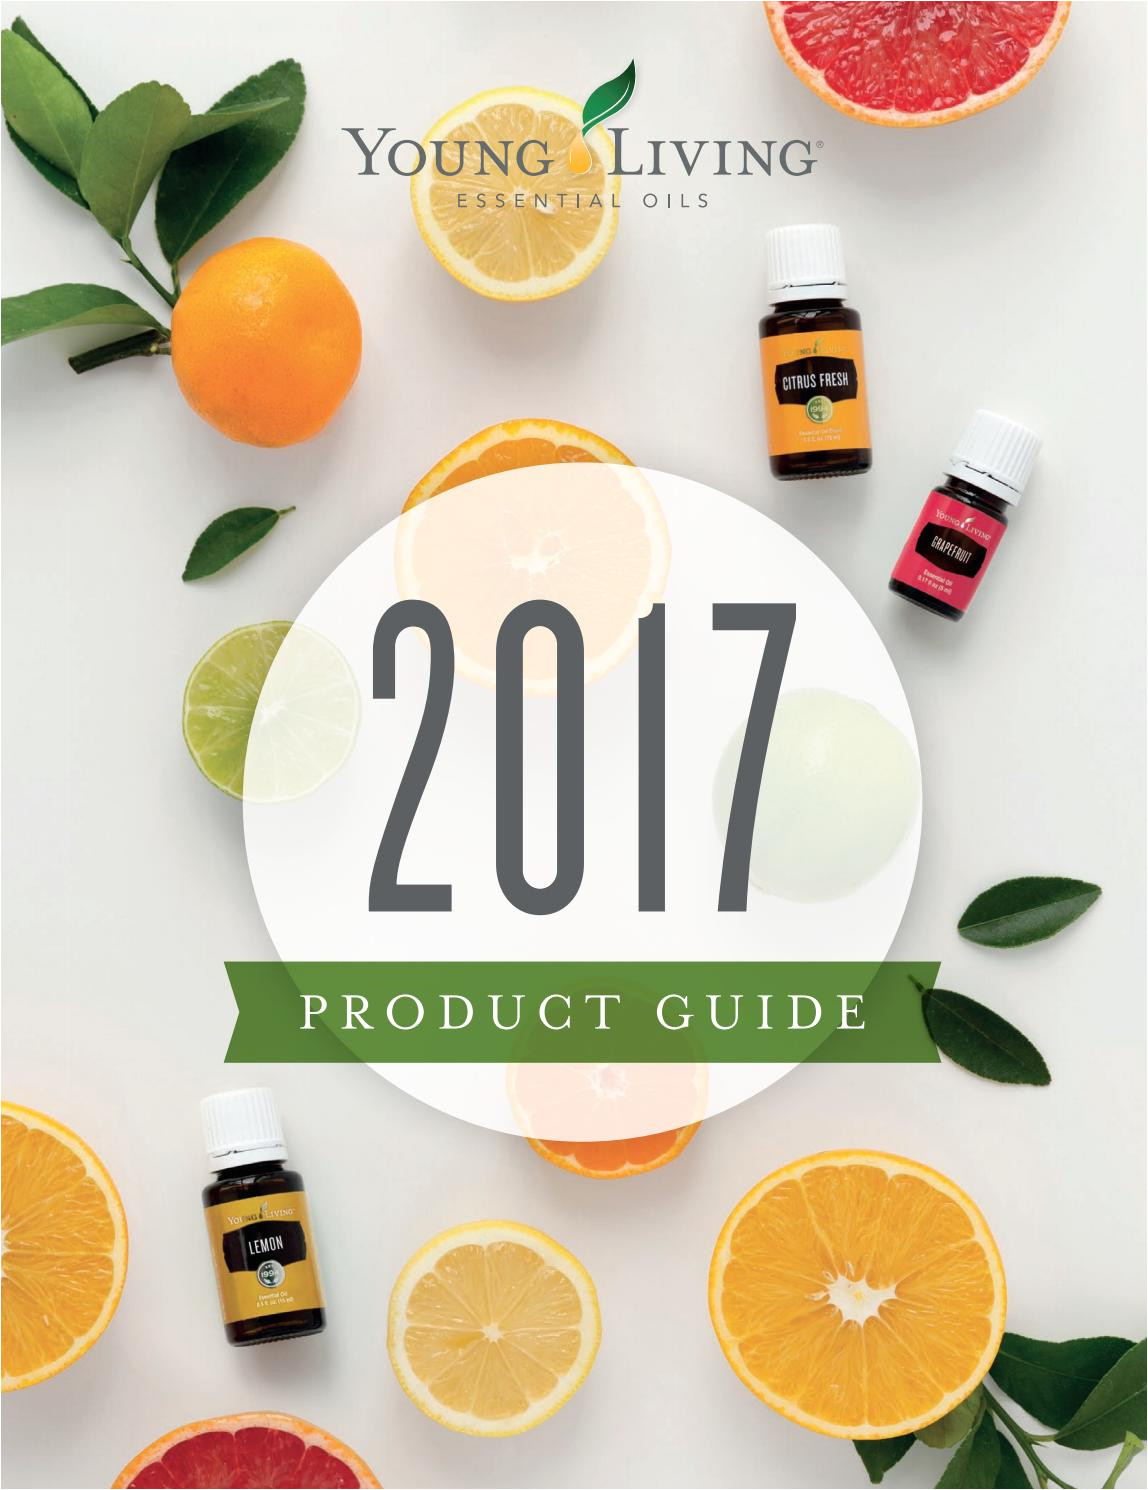 2016 2017 australian product guide by young living essential oils australia new zealand issuu